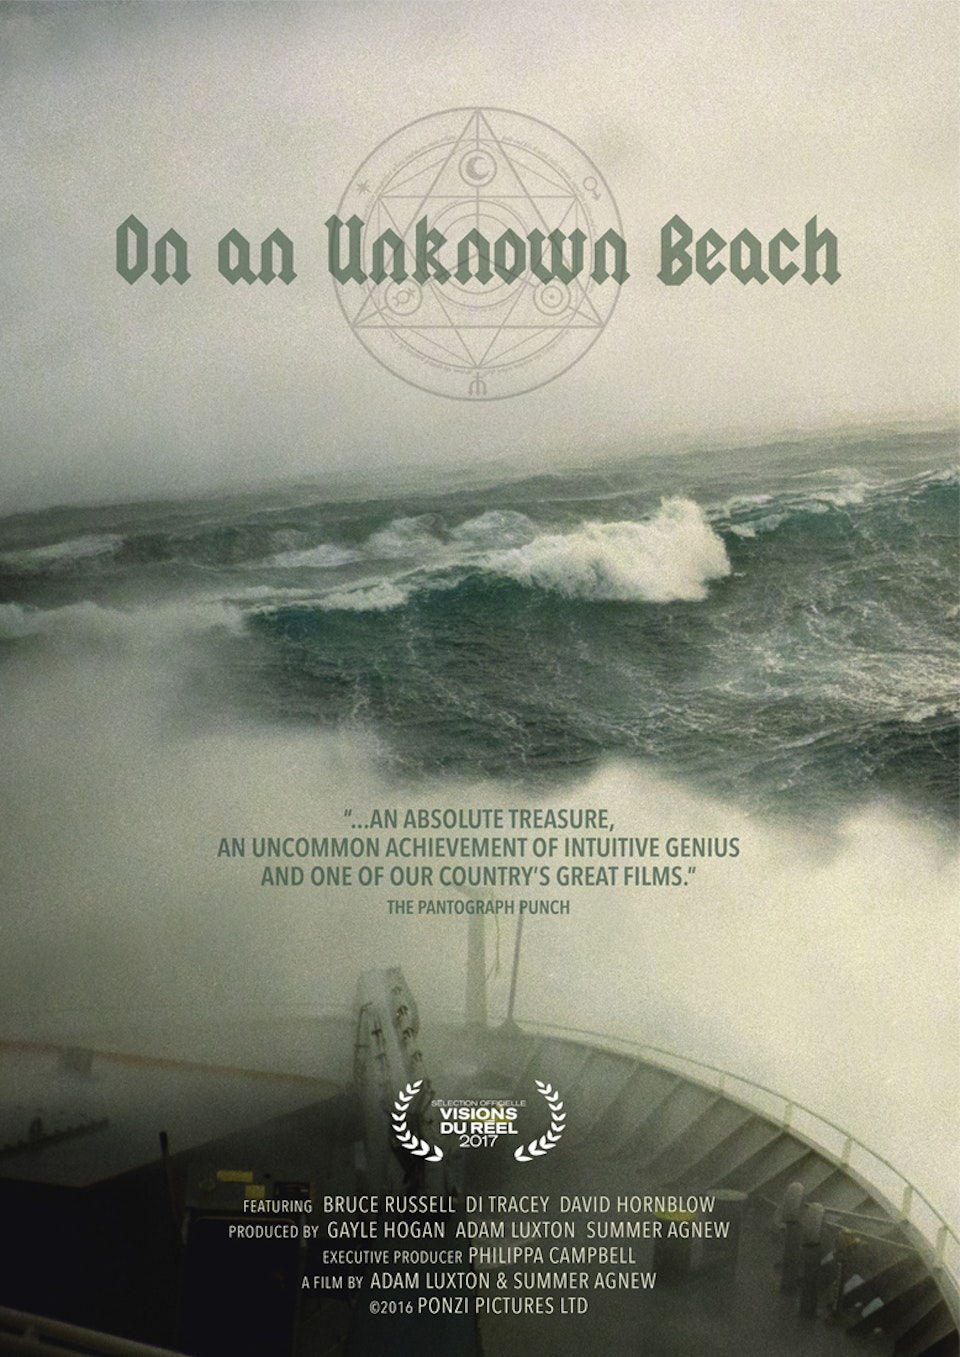 summer agnew makes films - on an unknown beach